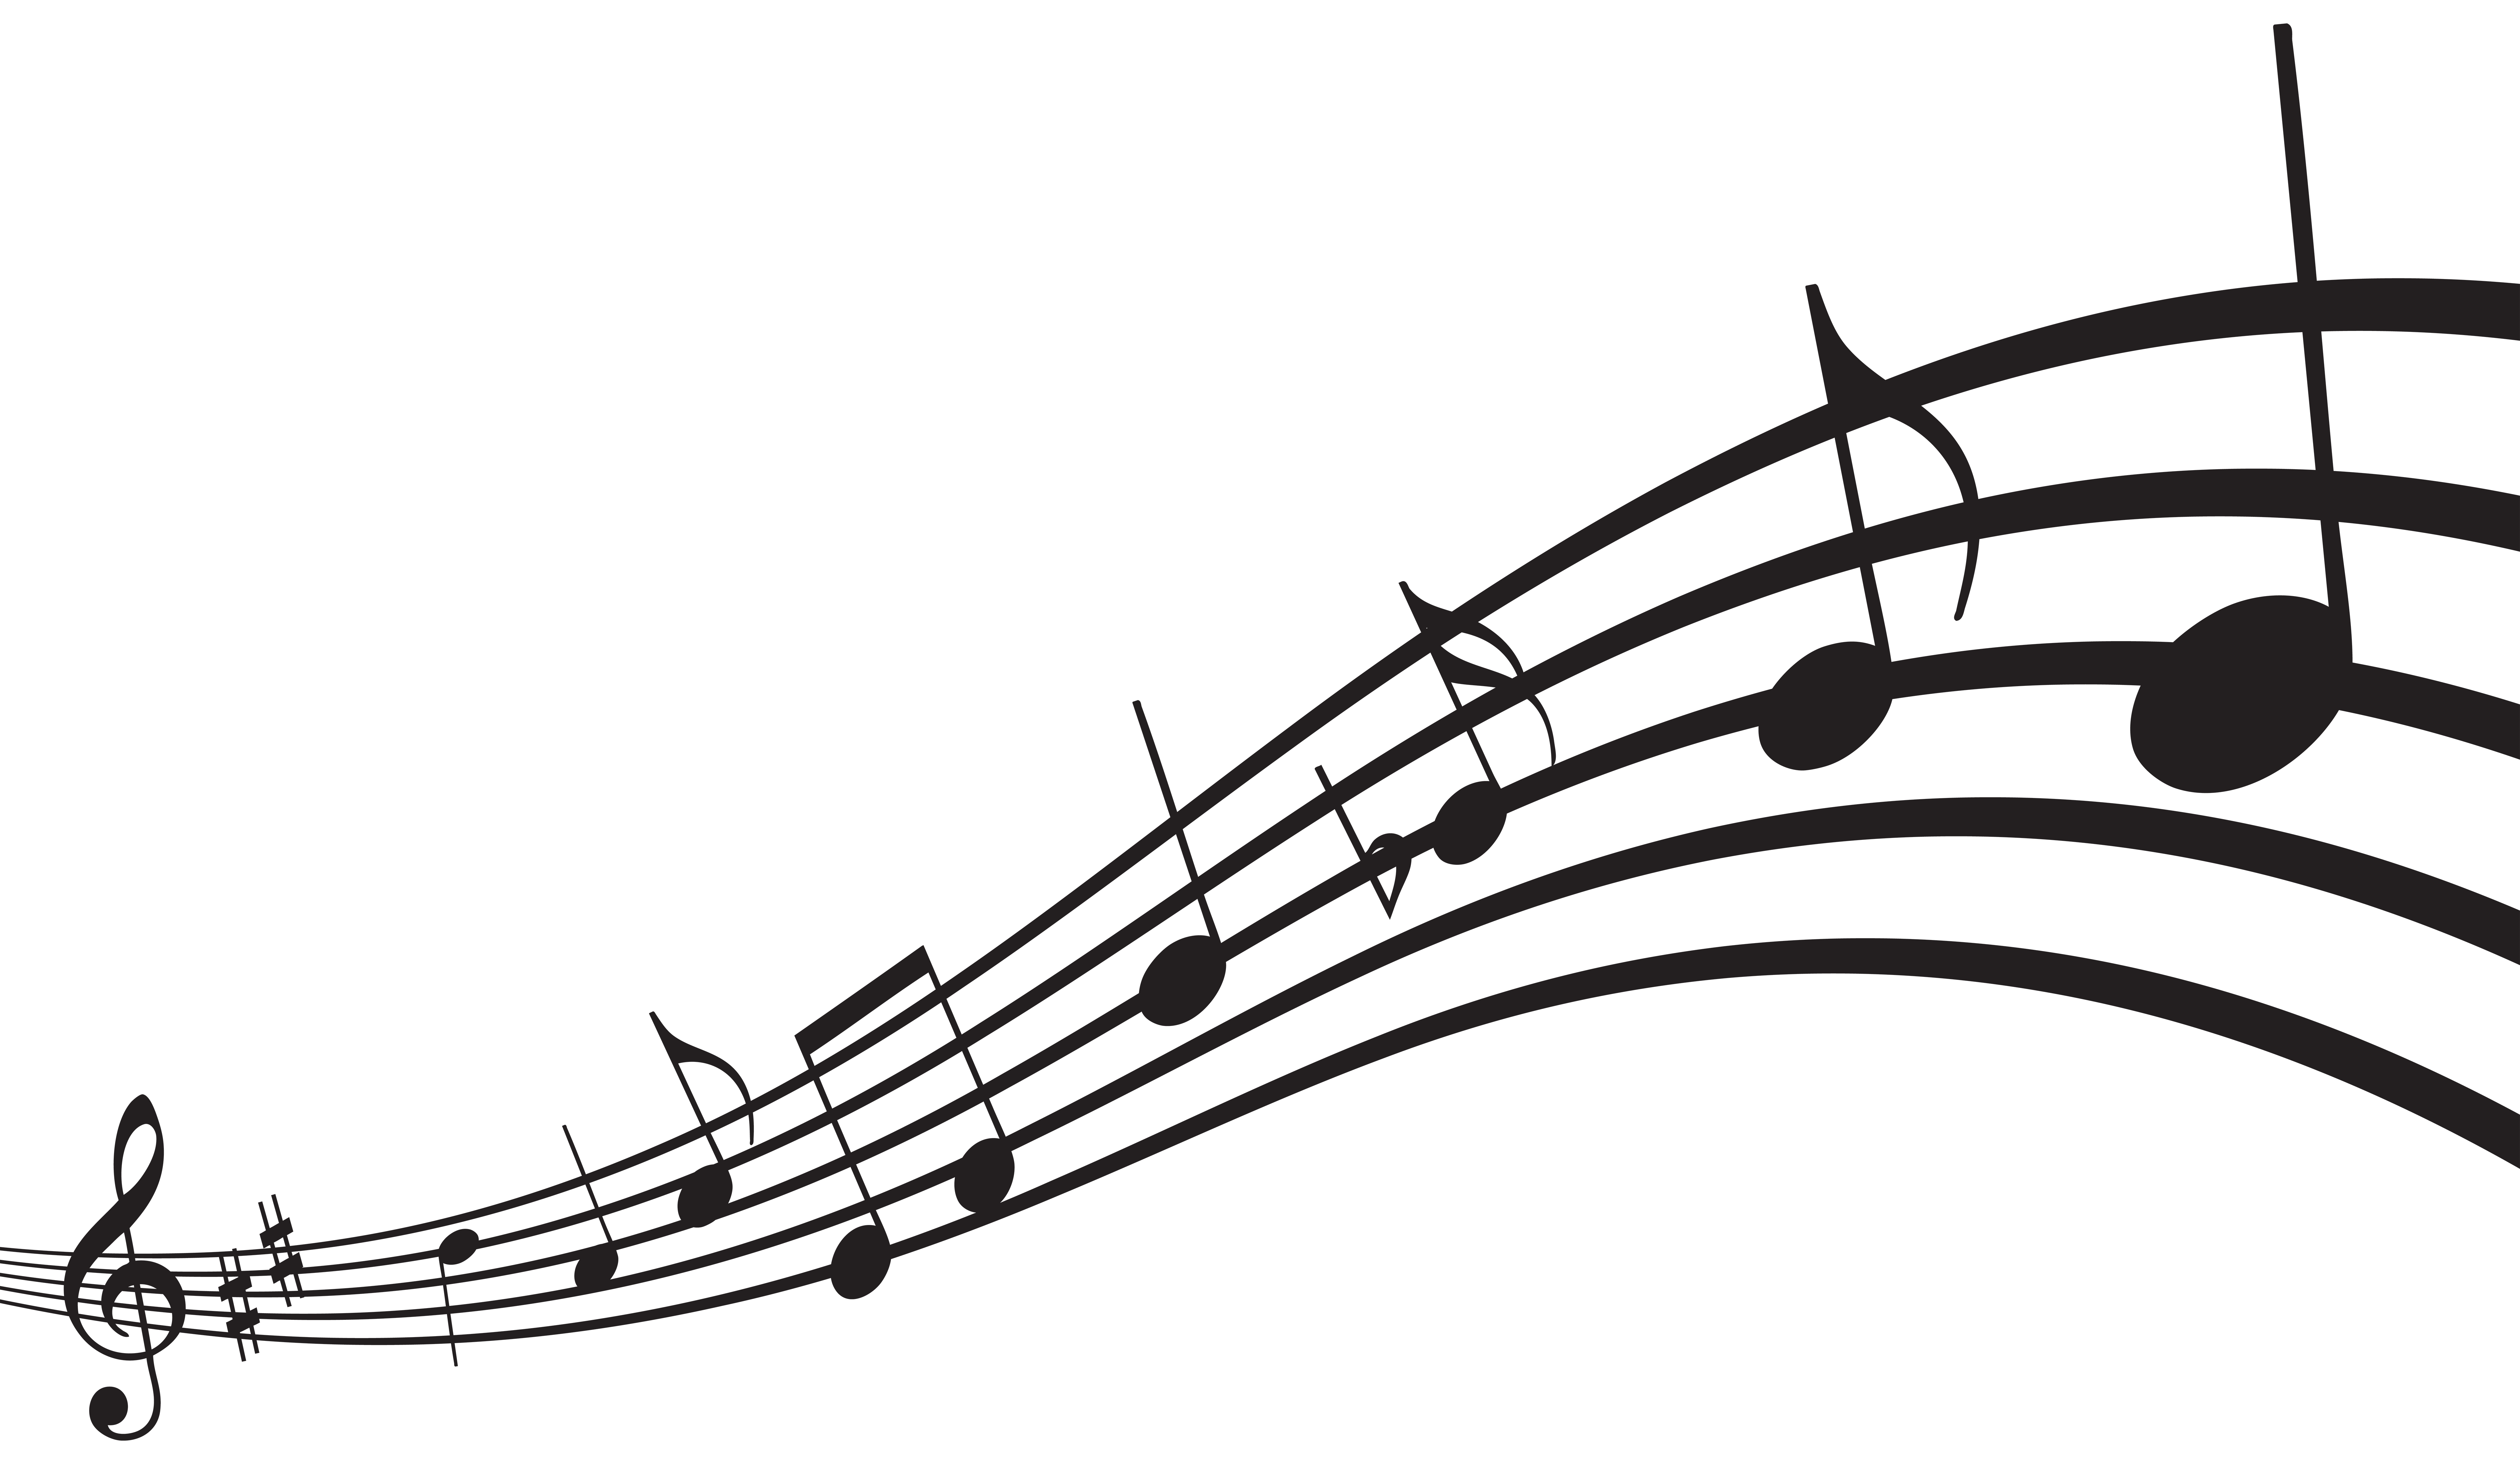 Music clipart banner. Best free notes clip